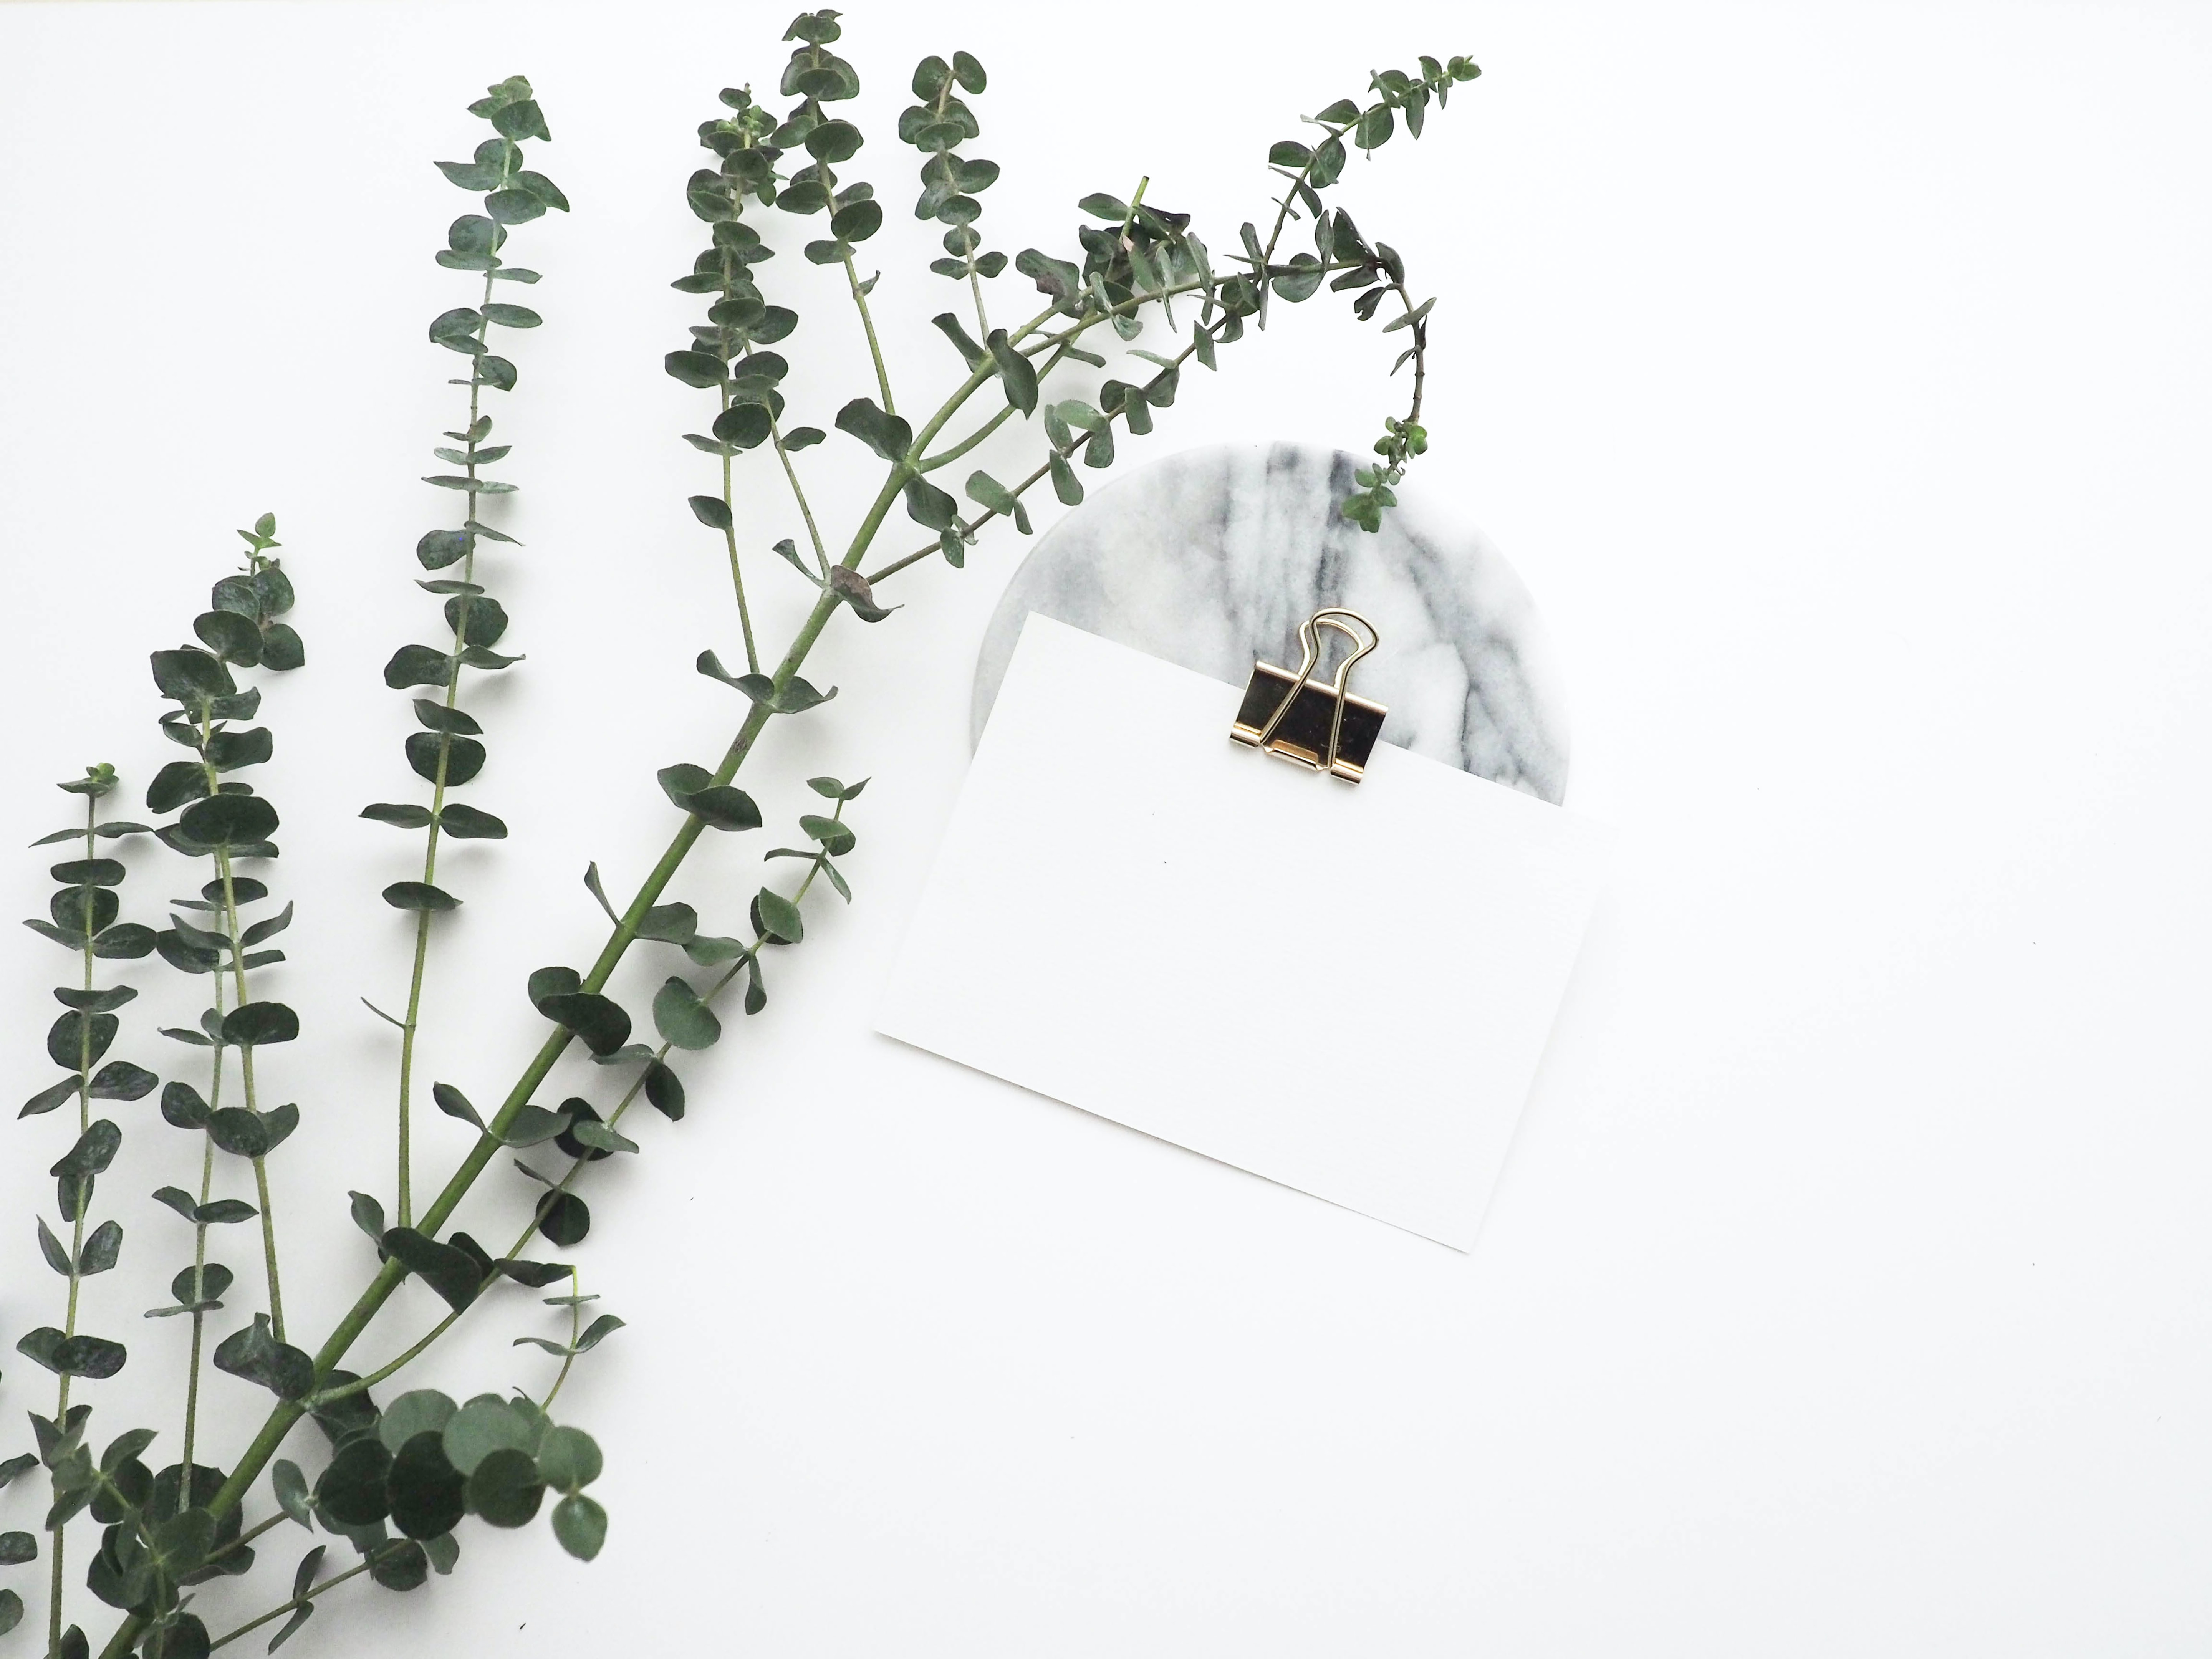 A Eucalyptus plant, a blank sheet of paper with a brass clip on it, and a marble slab against a white background